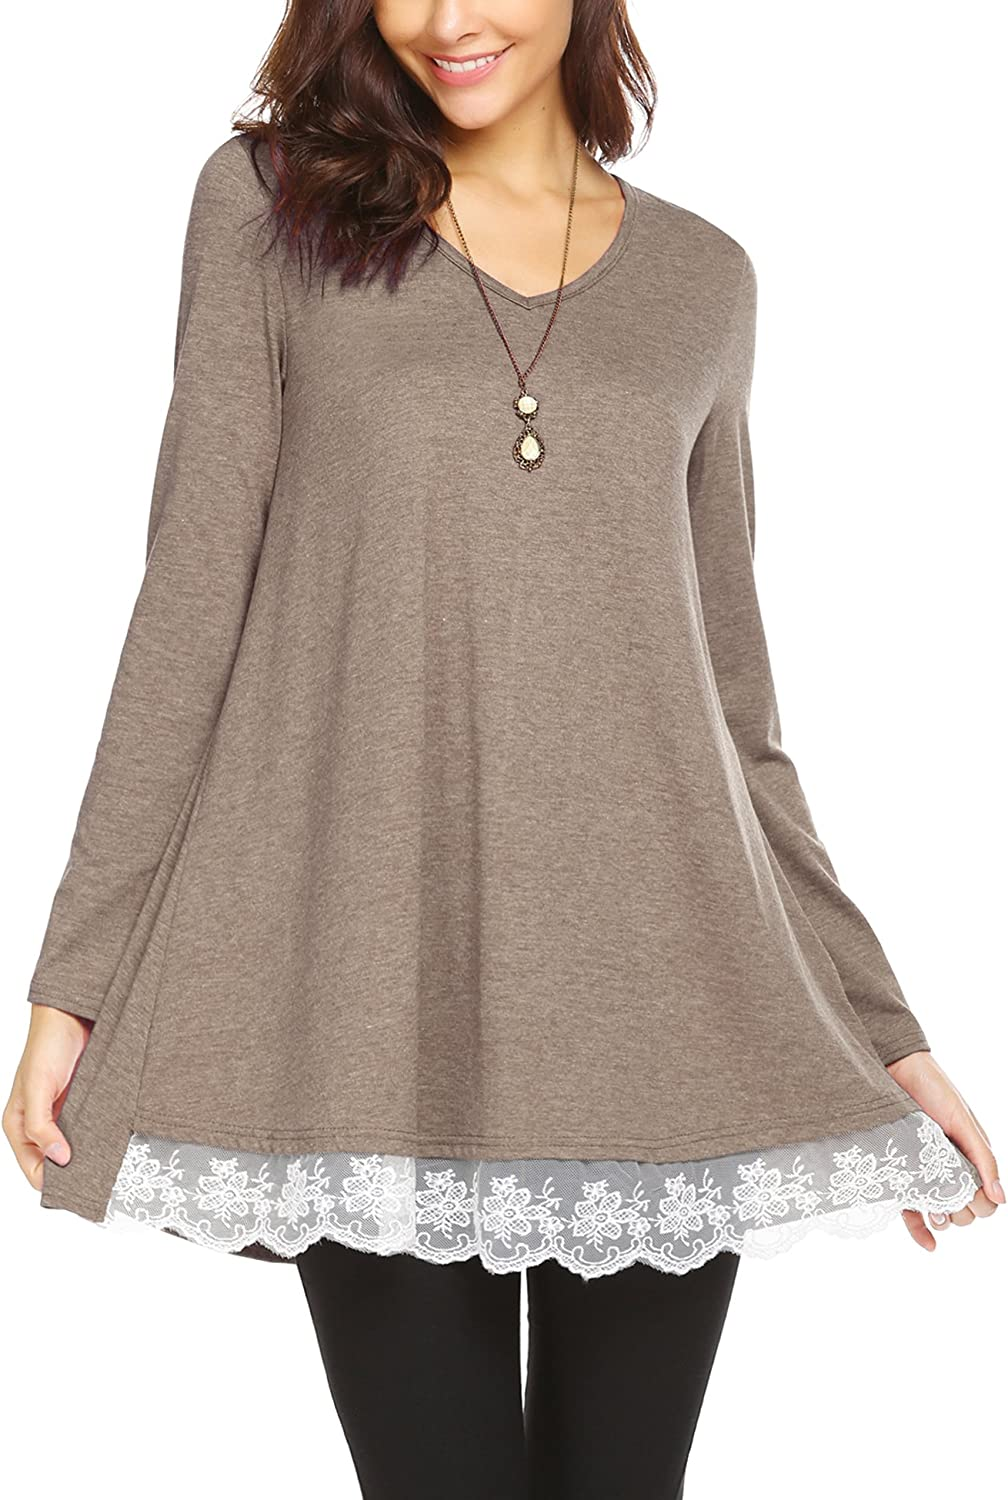 Dealwell Womens Casual Lace Trim Long Sleeve Shirt Loose ALine Tunic Blouse Tops